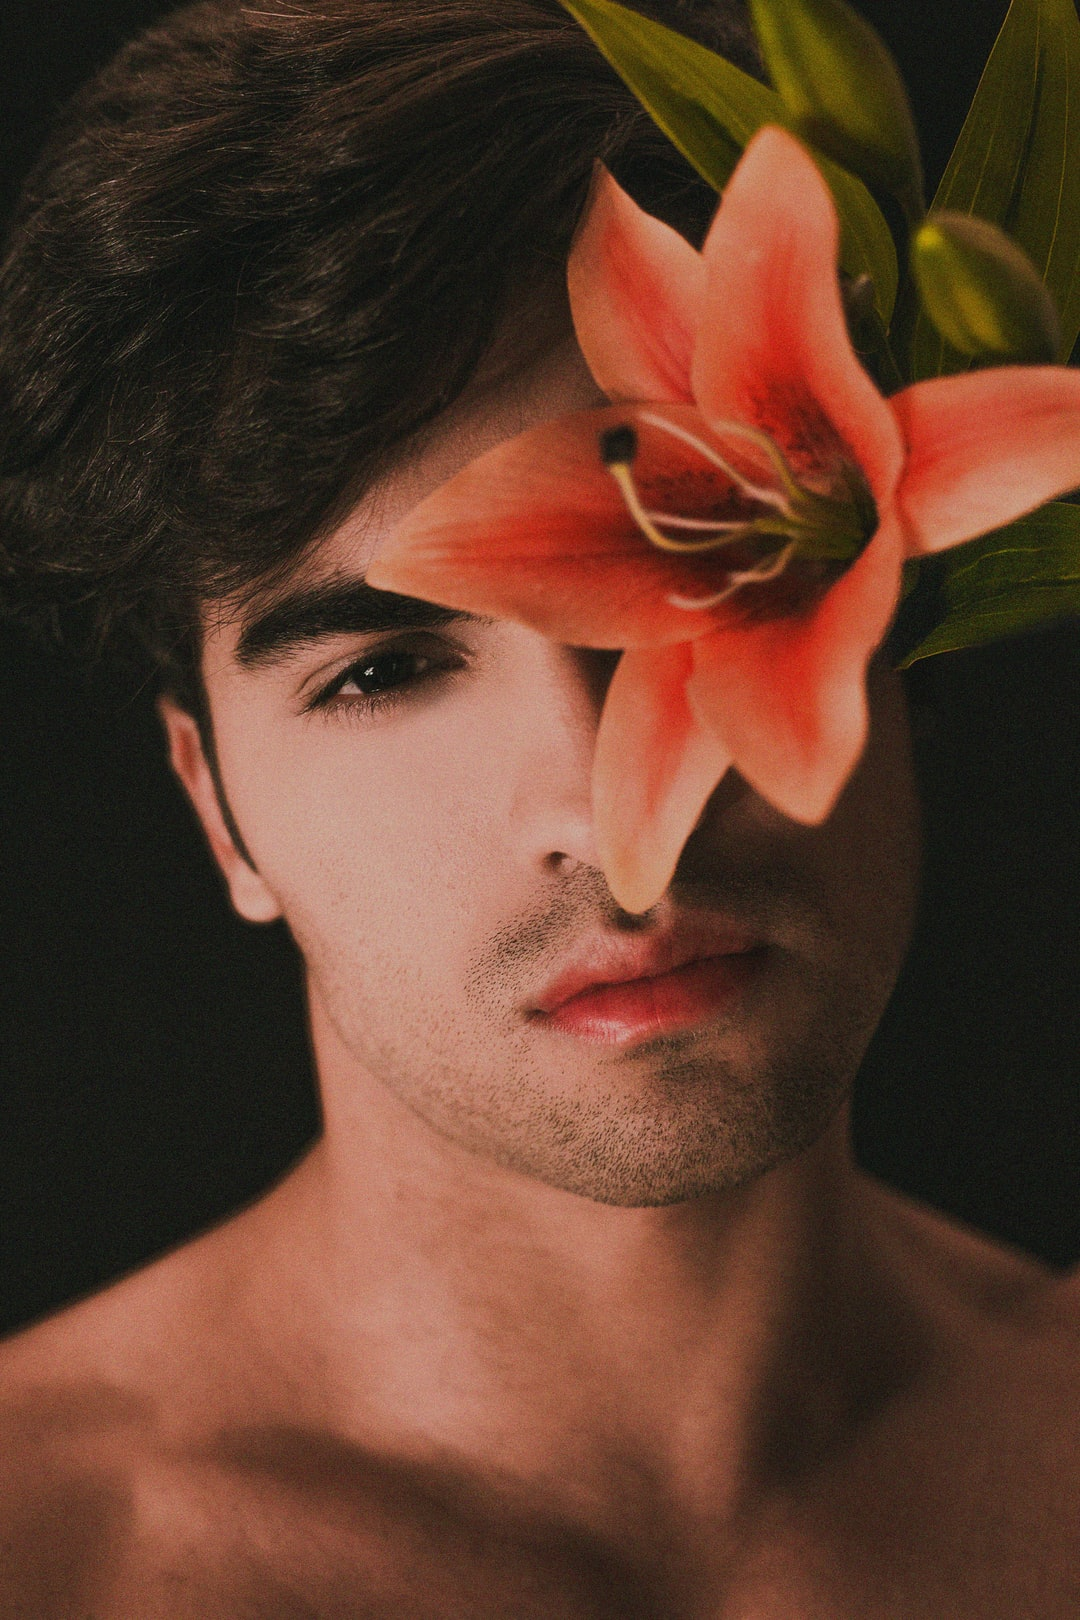 Man's face with a flower